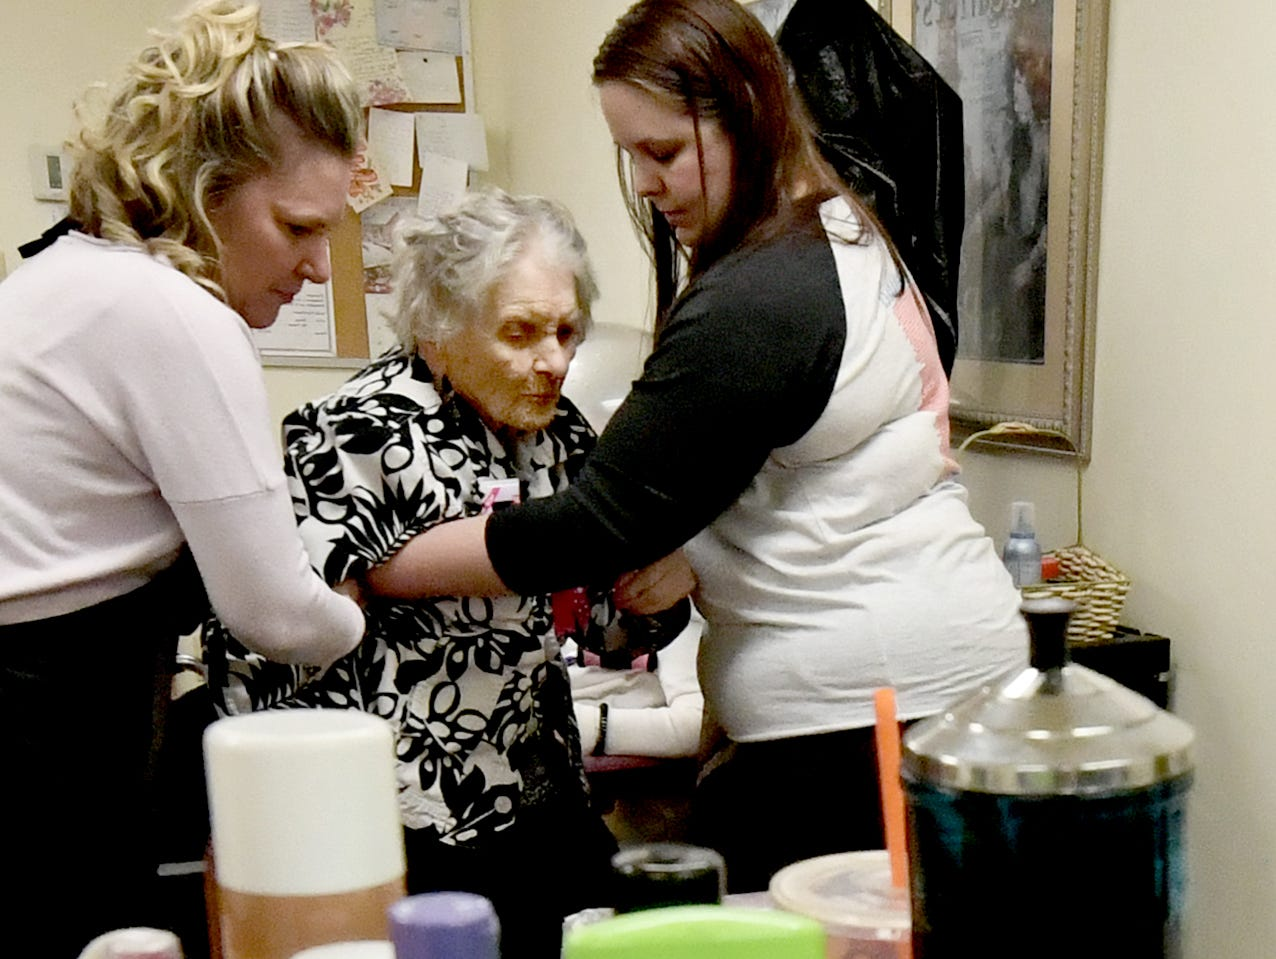 Hairdresser Vicki Zarilla, left, and physical therapist Tiffany McSherry seat Ruth Kohler for a makeover before celebrating her 104th birthday at Senior Commons at Powder Mill where she is a resident Friday, Feb. 1, 2019. According to Commons staff, she is the oldest resident to have lived there. Bill Kalina photo